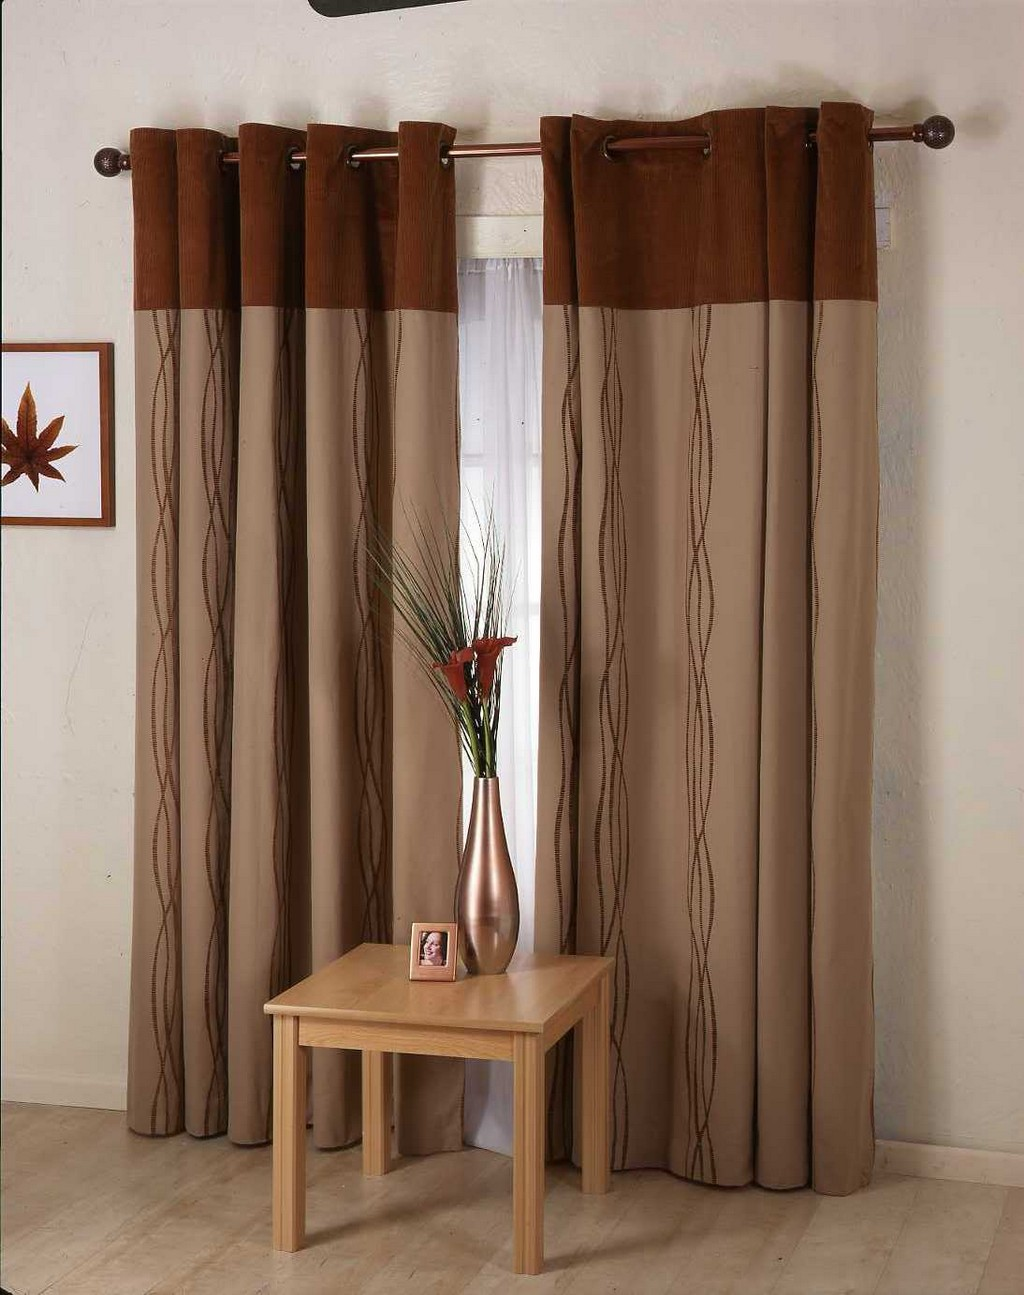 asian shower curtain, custom curtain rods, curtain rods curved shower diameter pieces, kitchen curtains and blinds uk